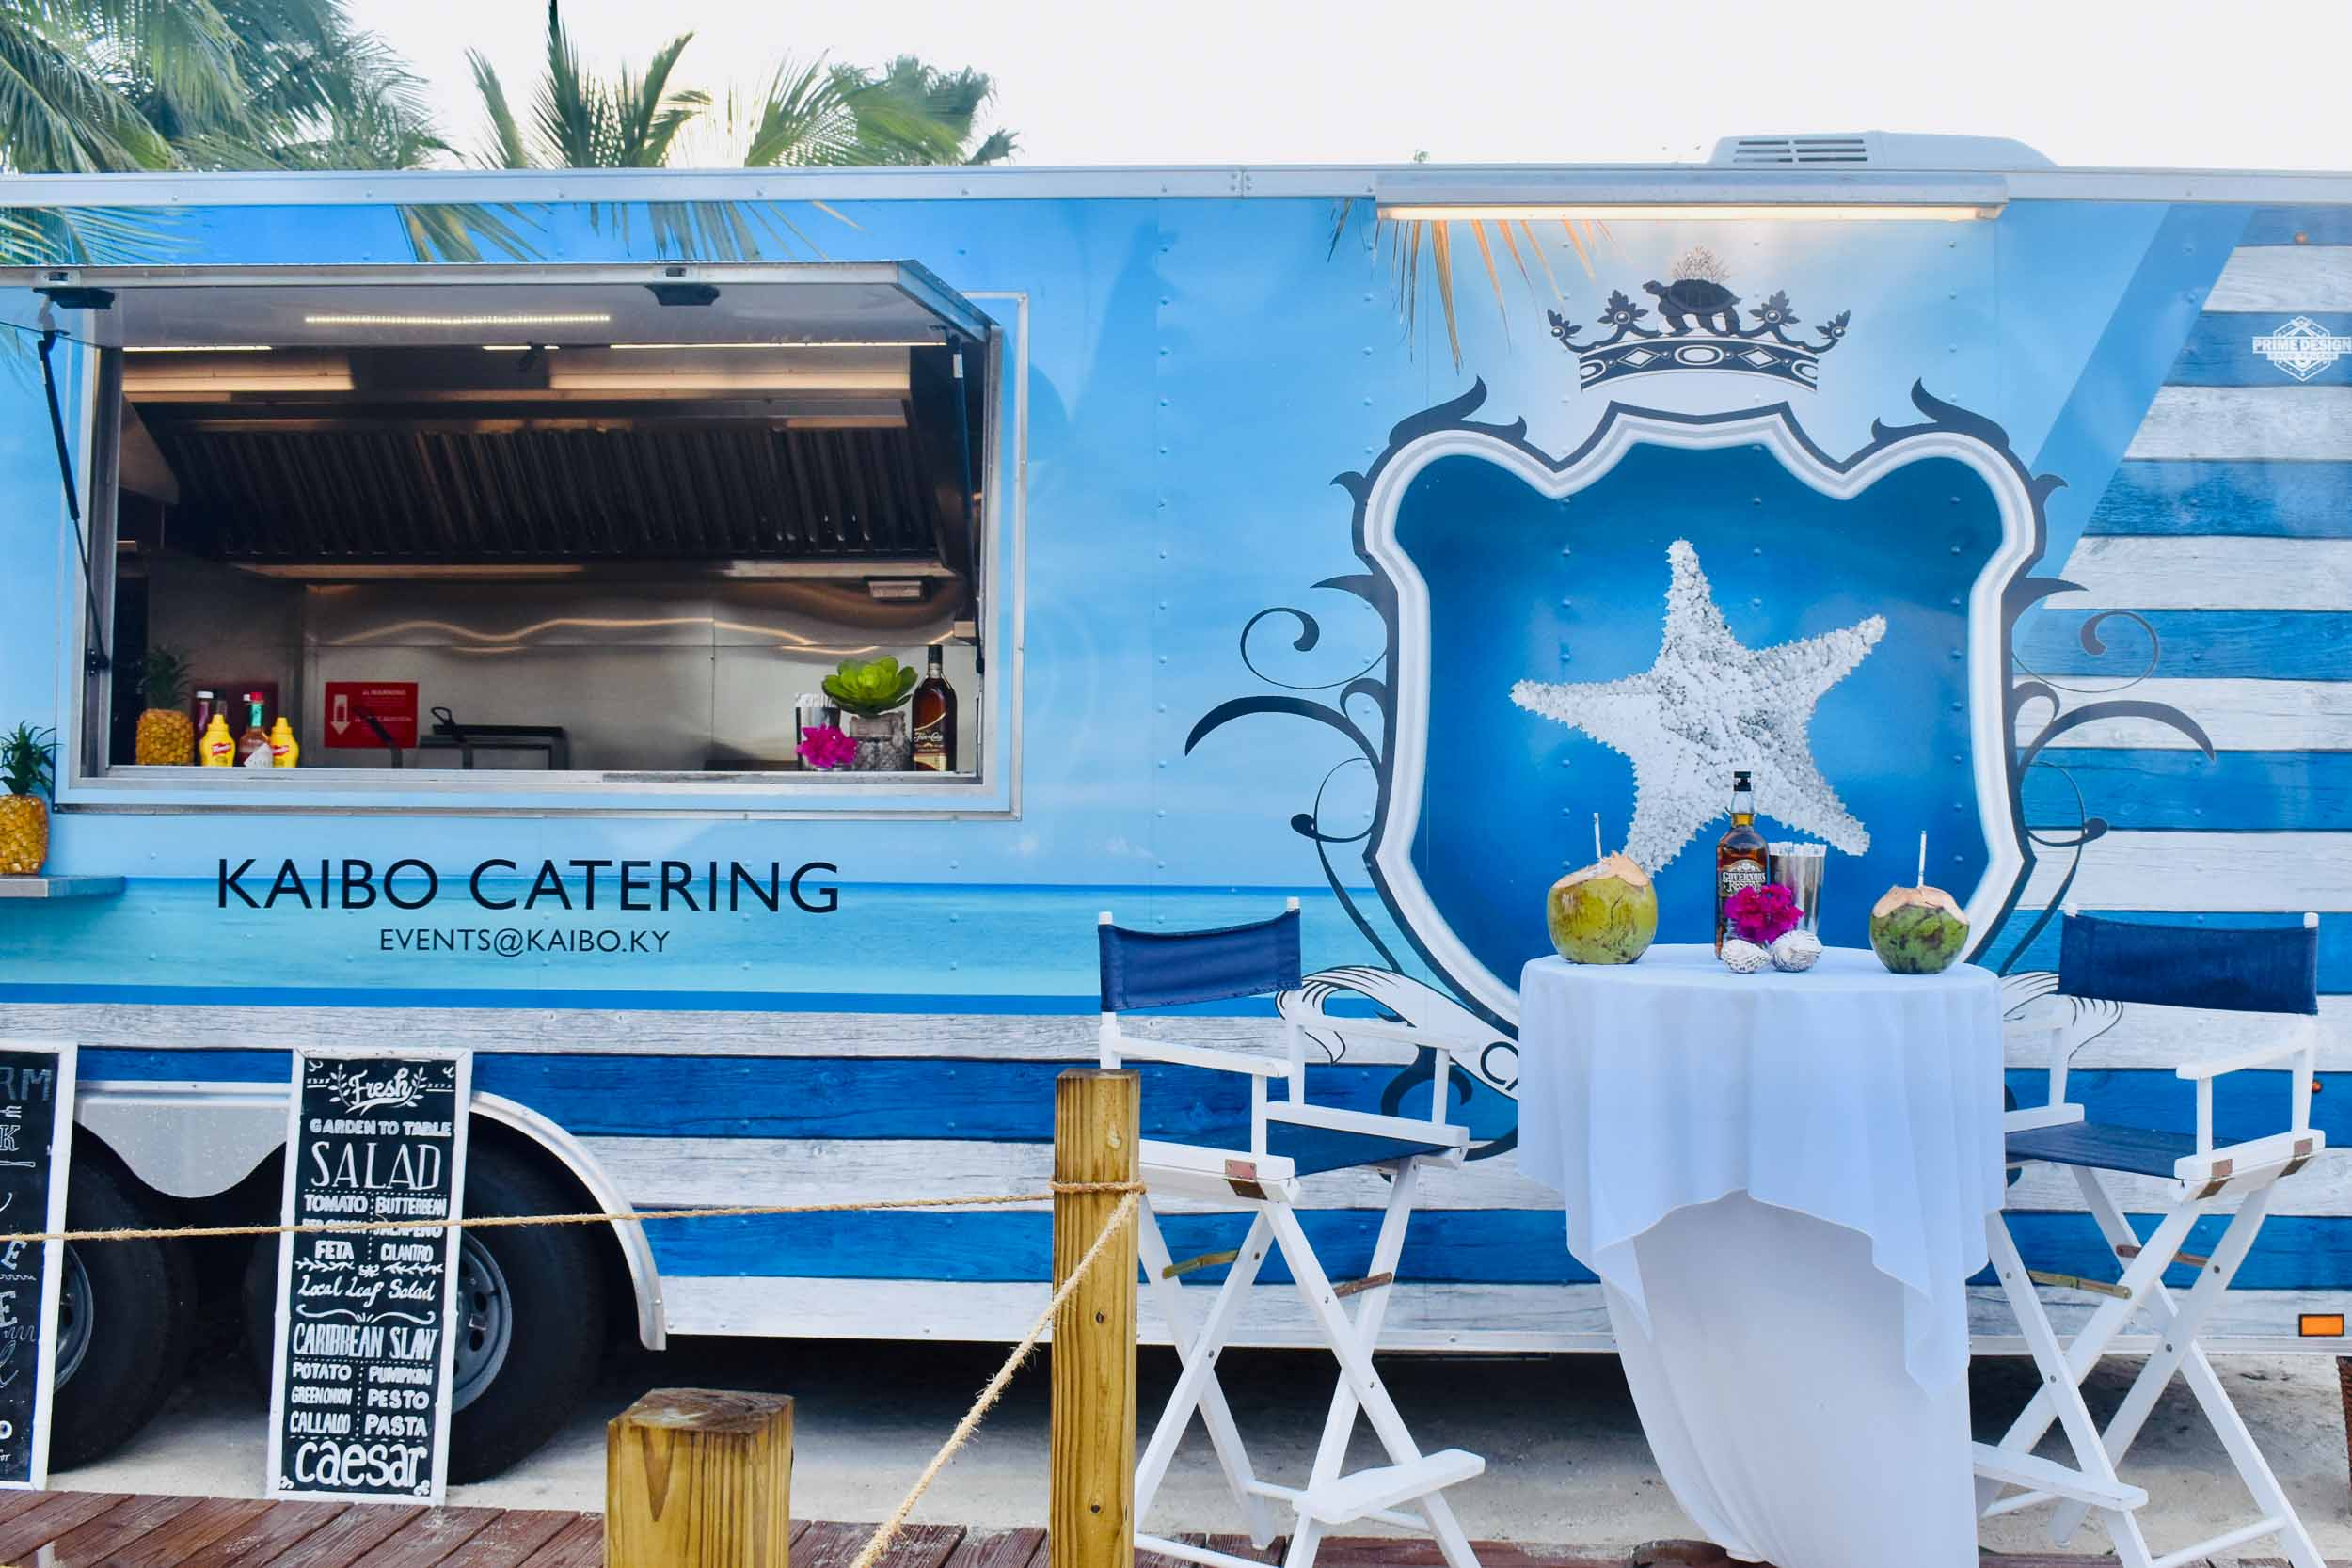 Kaibo's new food truck